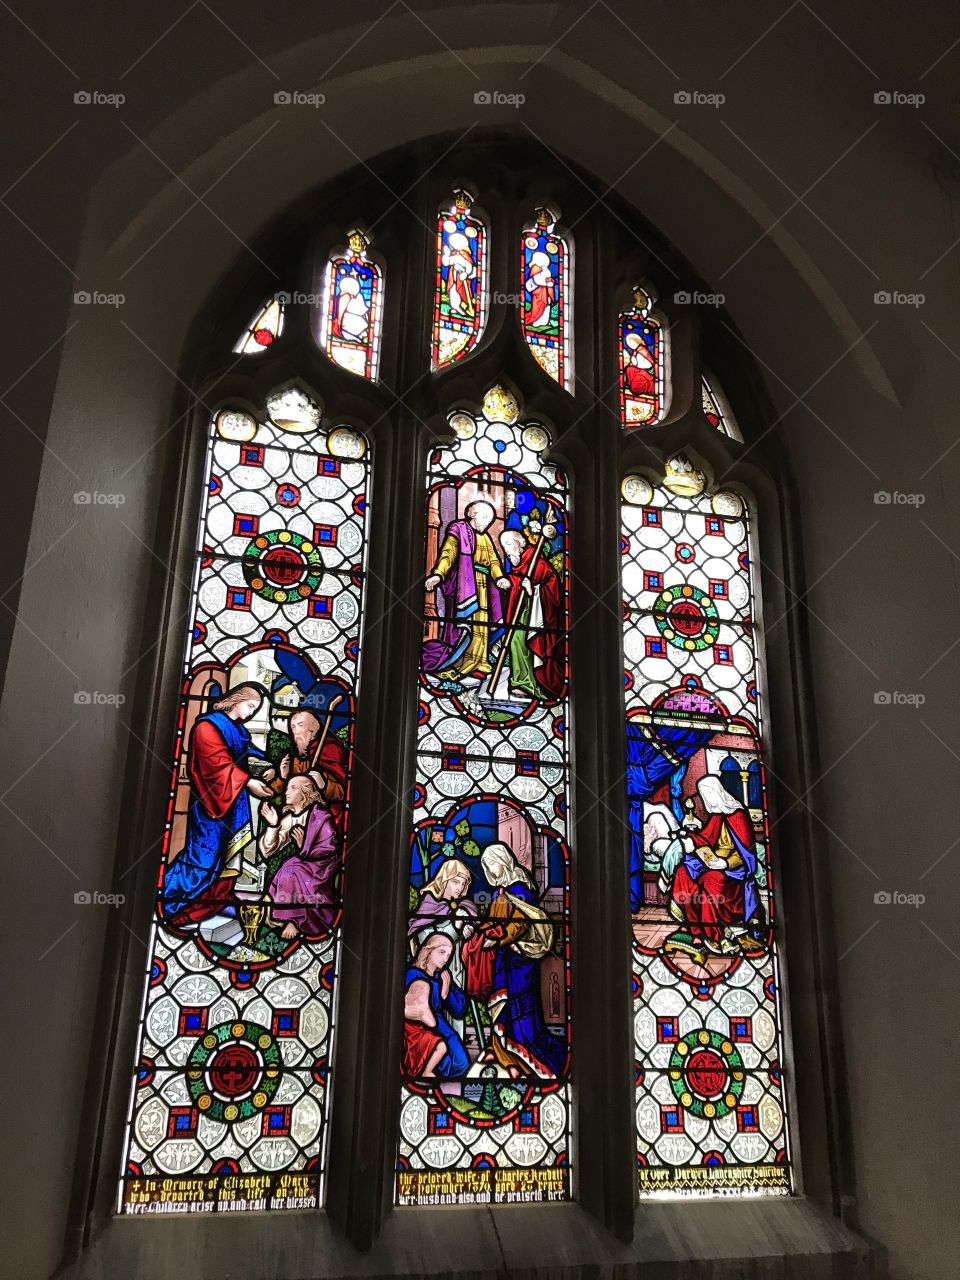 A most engaging stain glasses window to be found in All Saints Church, East Budleigh.